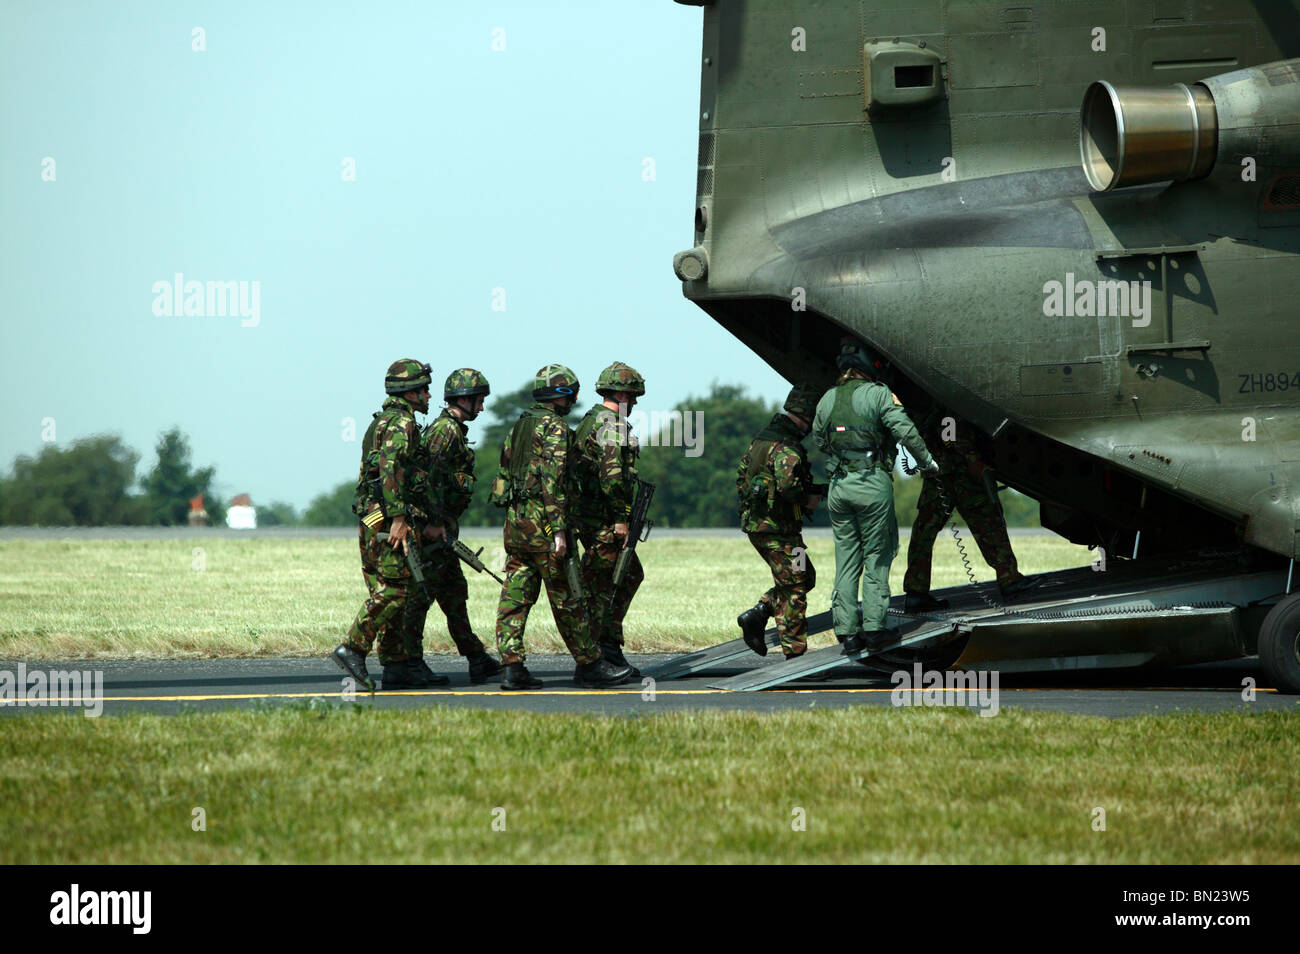 Troops boarding an RAF Chinook HC.2 helicopter, via its rear loading ramp, under the guidance of an air loadmaster. - Stock Image